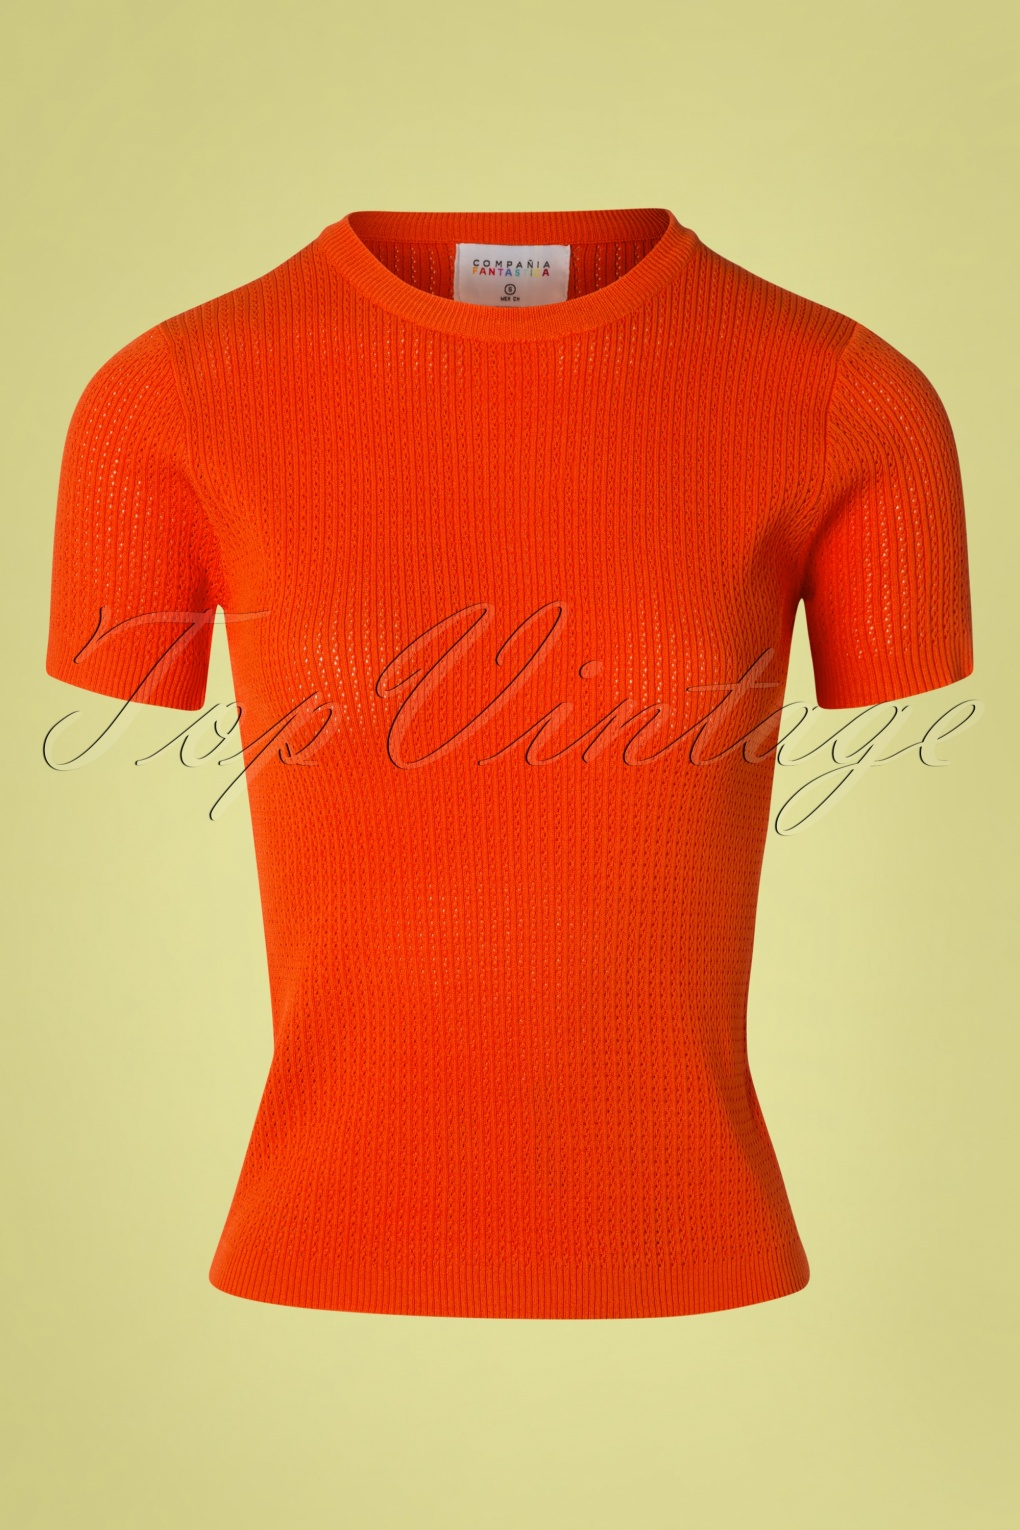 Women's 70s Shirts, Blouses, Hippie Tops 60s Eliana Knitted Top in Orange �35.00 AT vintagedancer.com